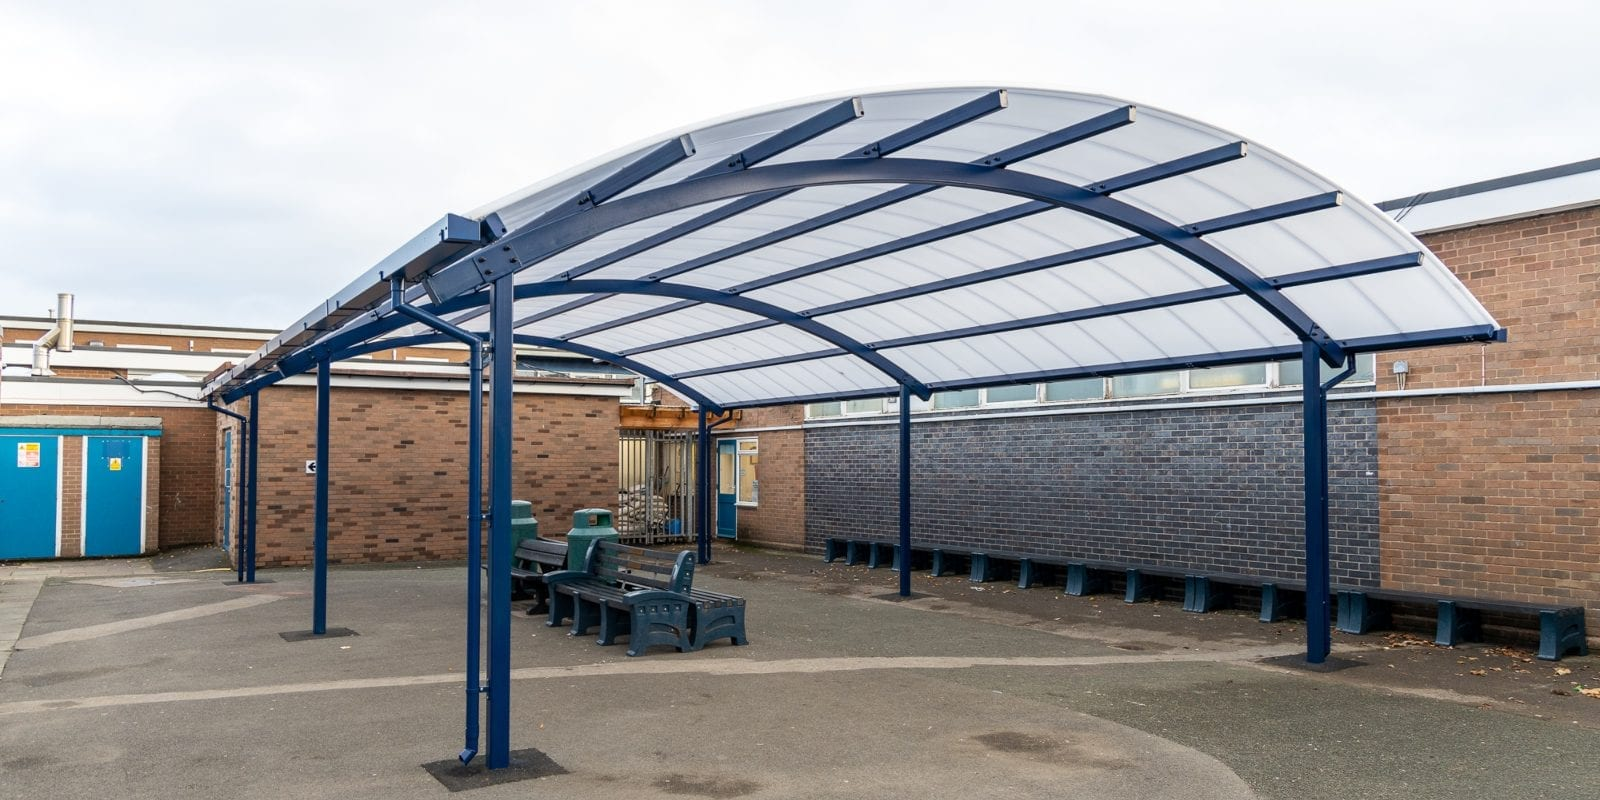 Freestanding canopy we installed at The Corbet School